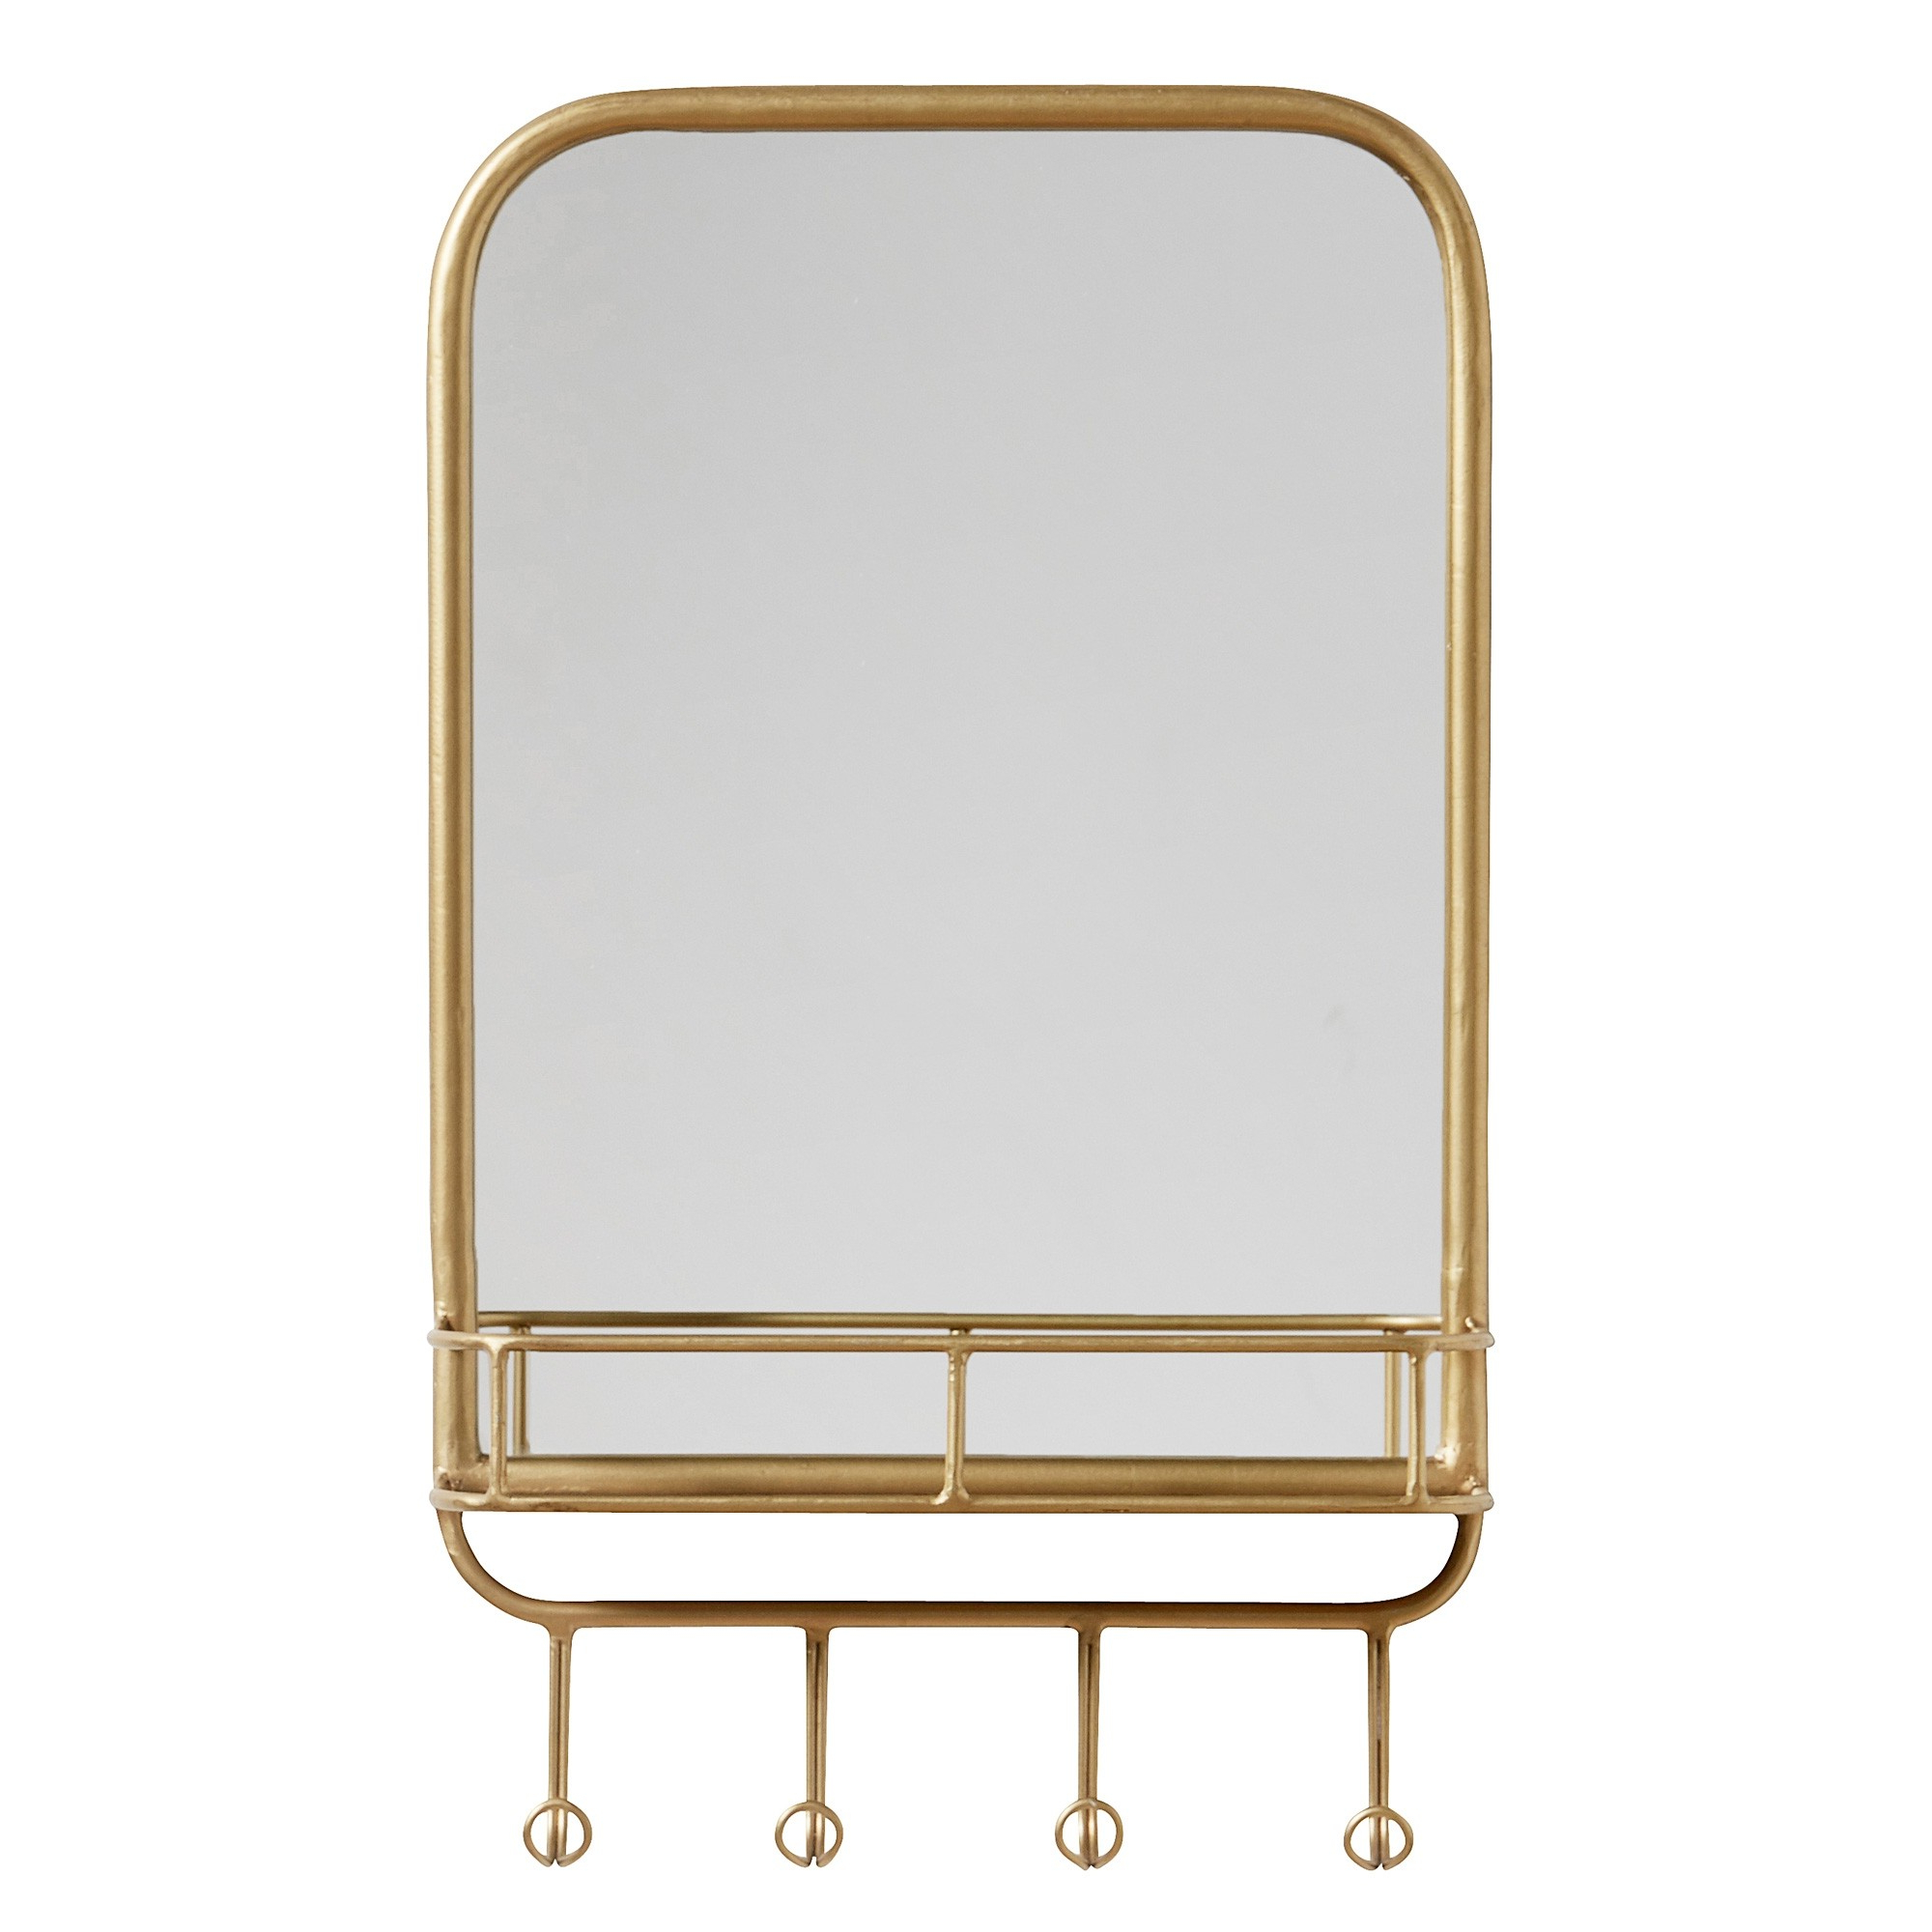 Wall Mirrors With Shelf And Hooks With Regard To Newest Simple Wall Mirror With Shelf And Hooks (View 17 of 20)